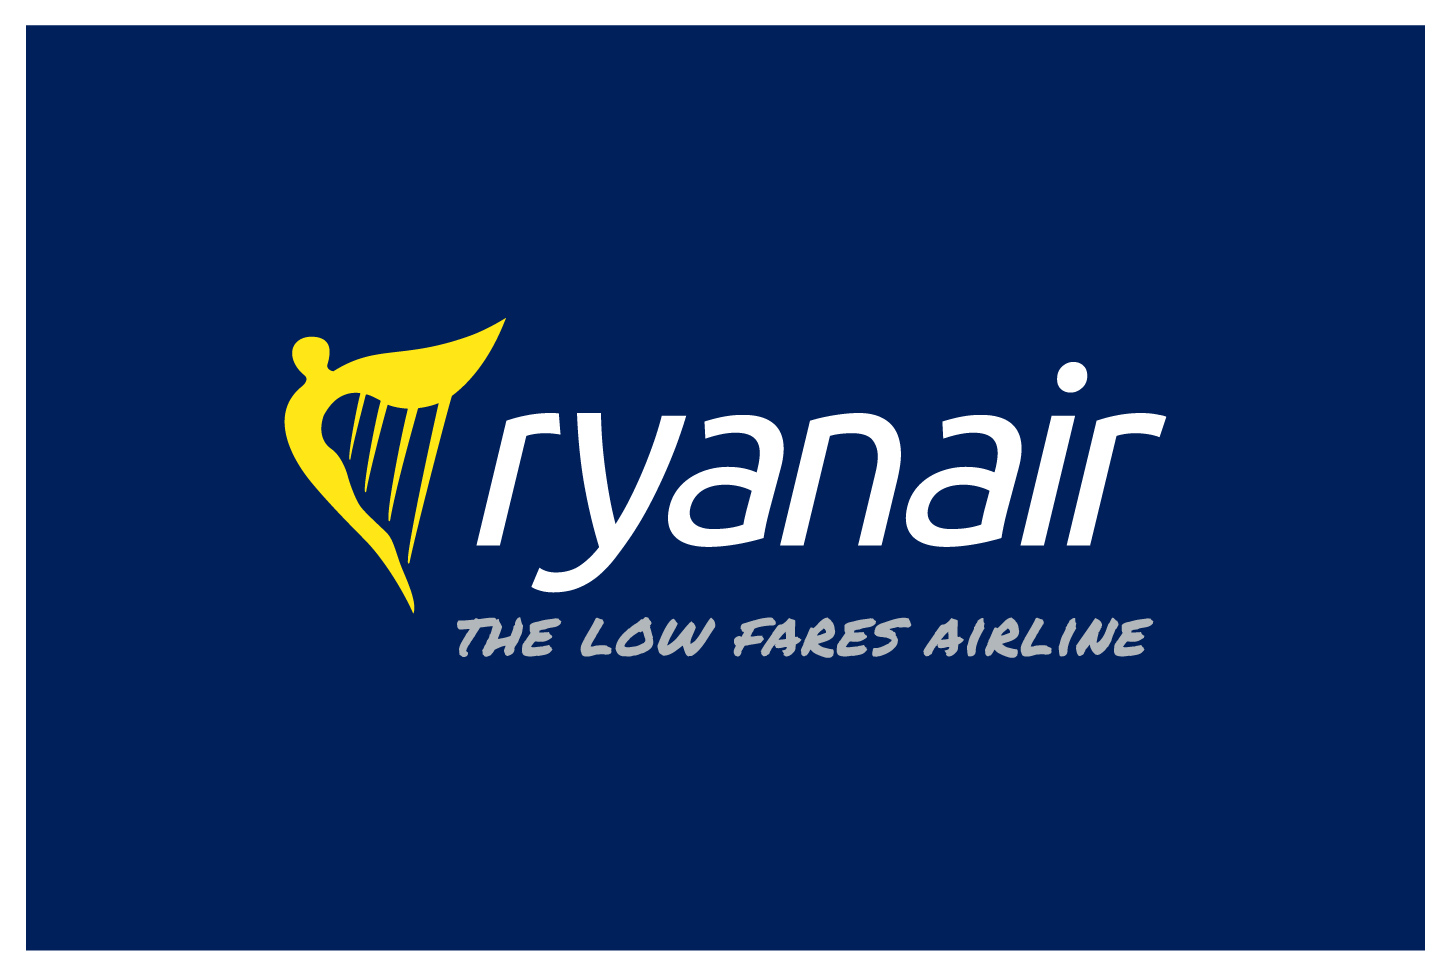 ryan air Find cheap flights in seconds, explore destinations on a map, and sign up for fare alerts on google flights.